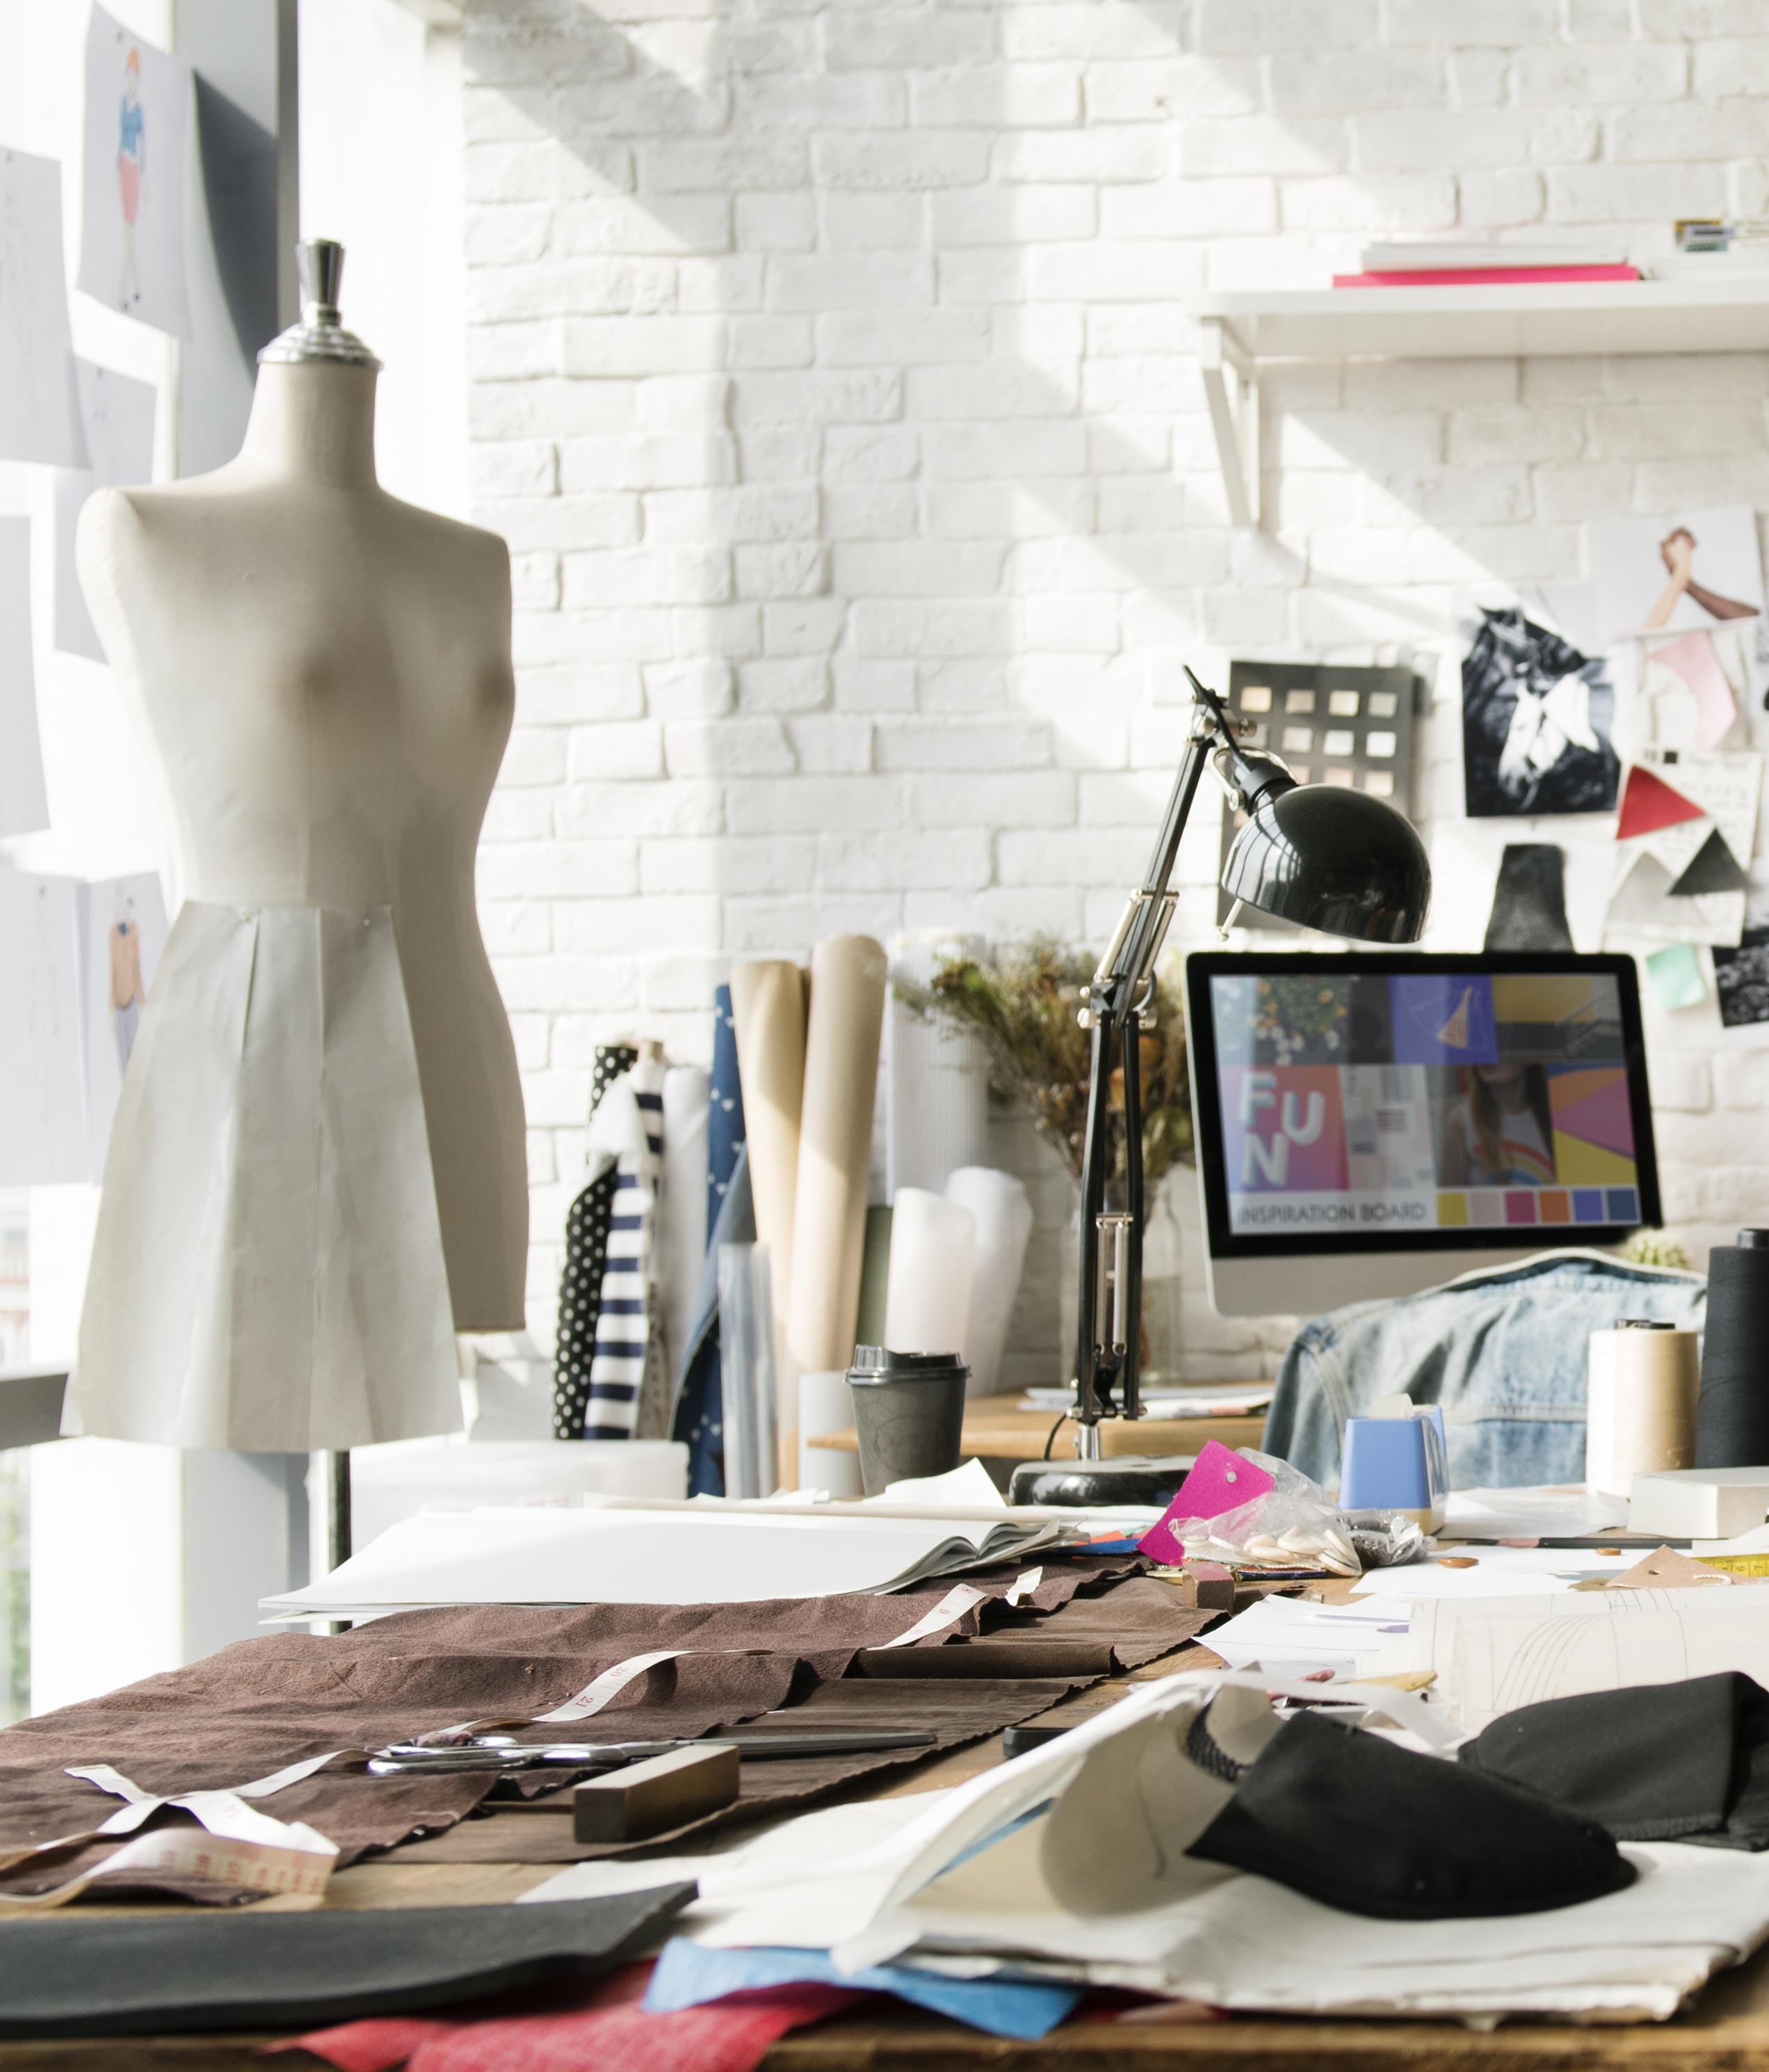 fashion design consultancy